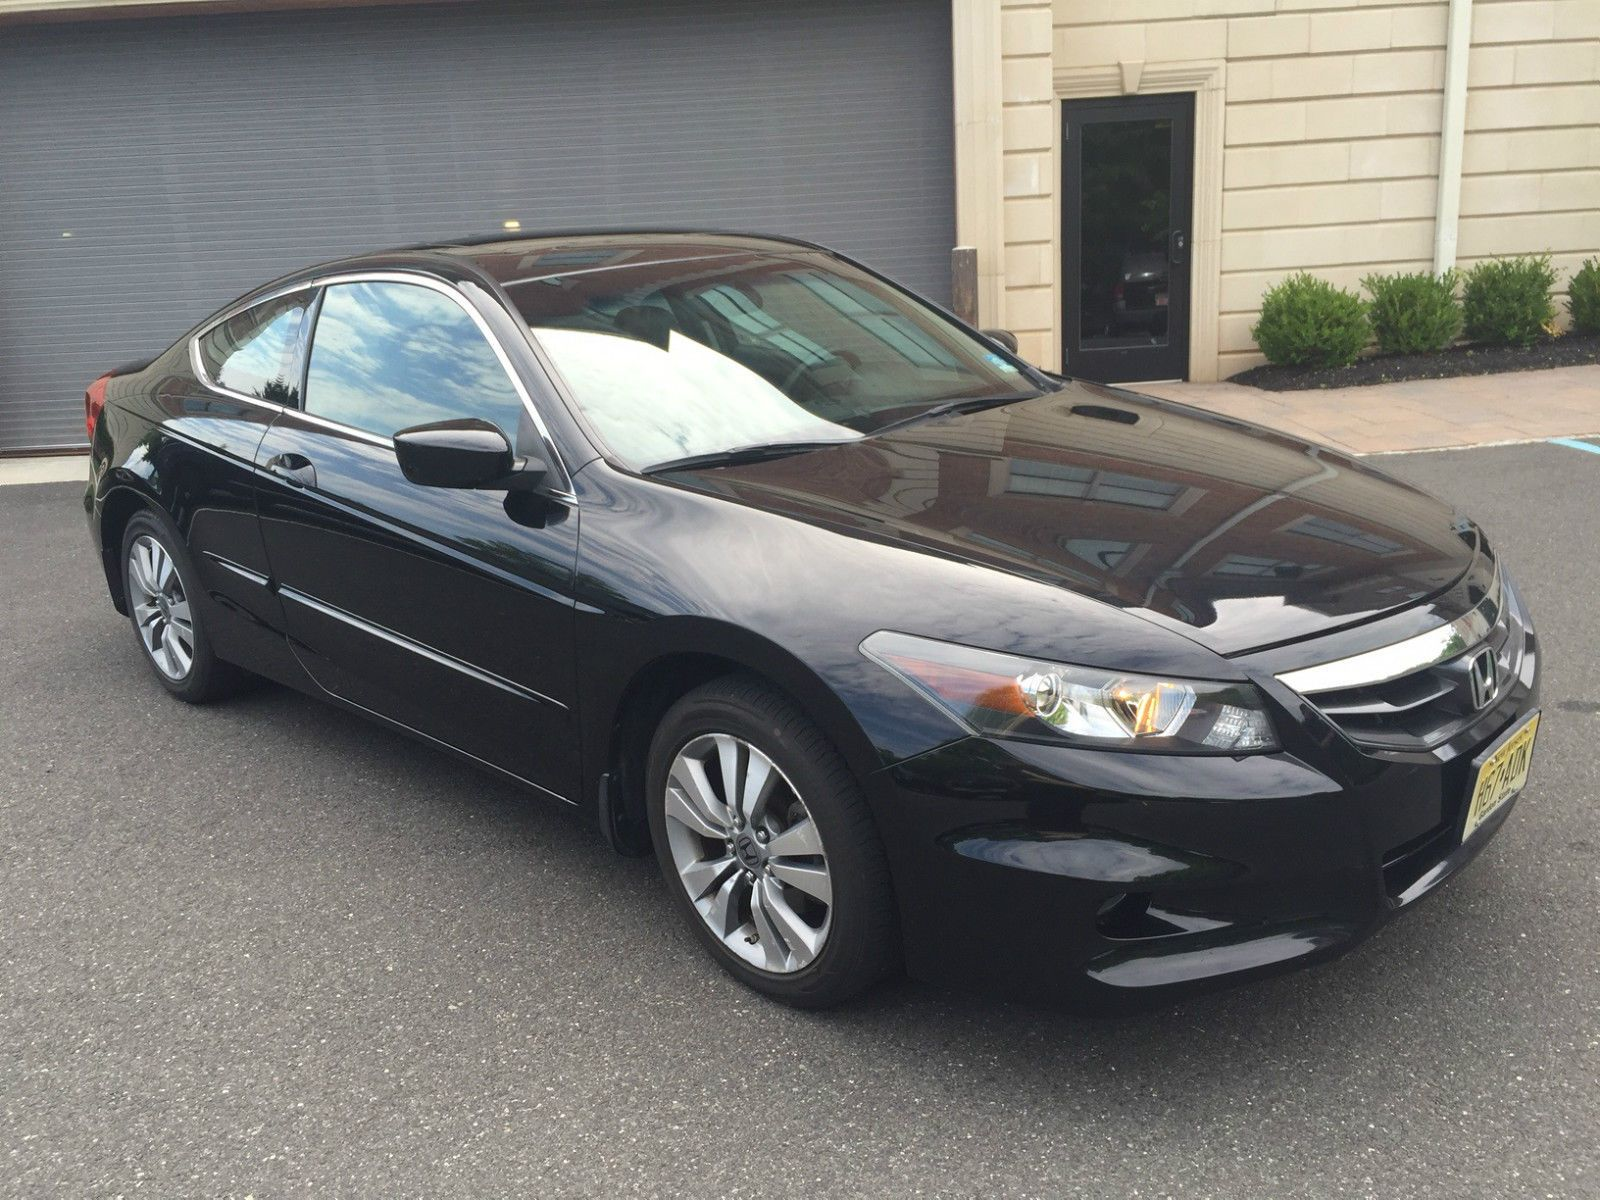 Car Brand Auctioned Honda Accord Ex L Coupe 2 Door 2011 Car Model Honda Accord Ex L Coupe Black 54 200 Miles Loaded Exc Honda Accord Ex Honda Accord Car Model